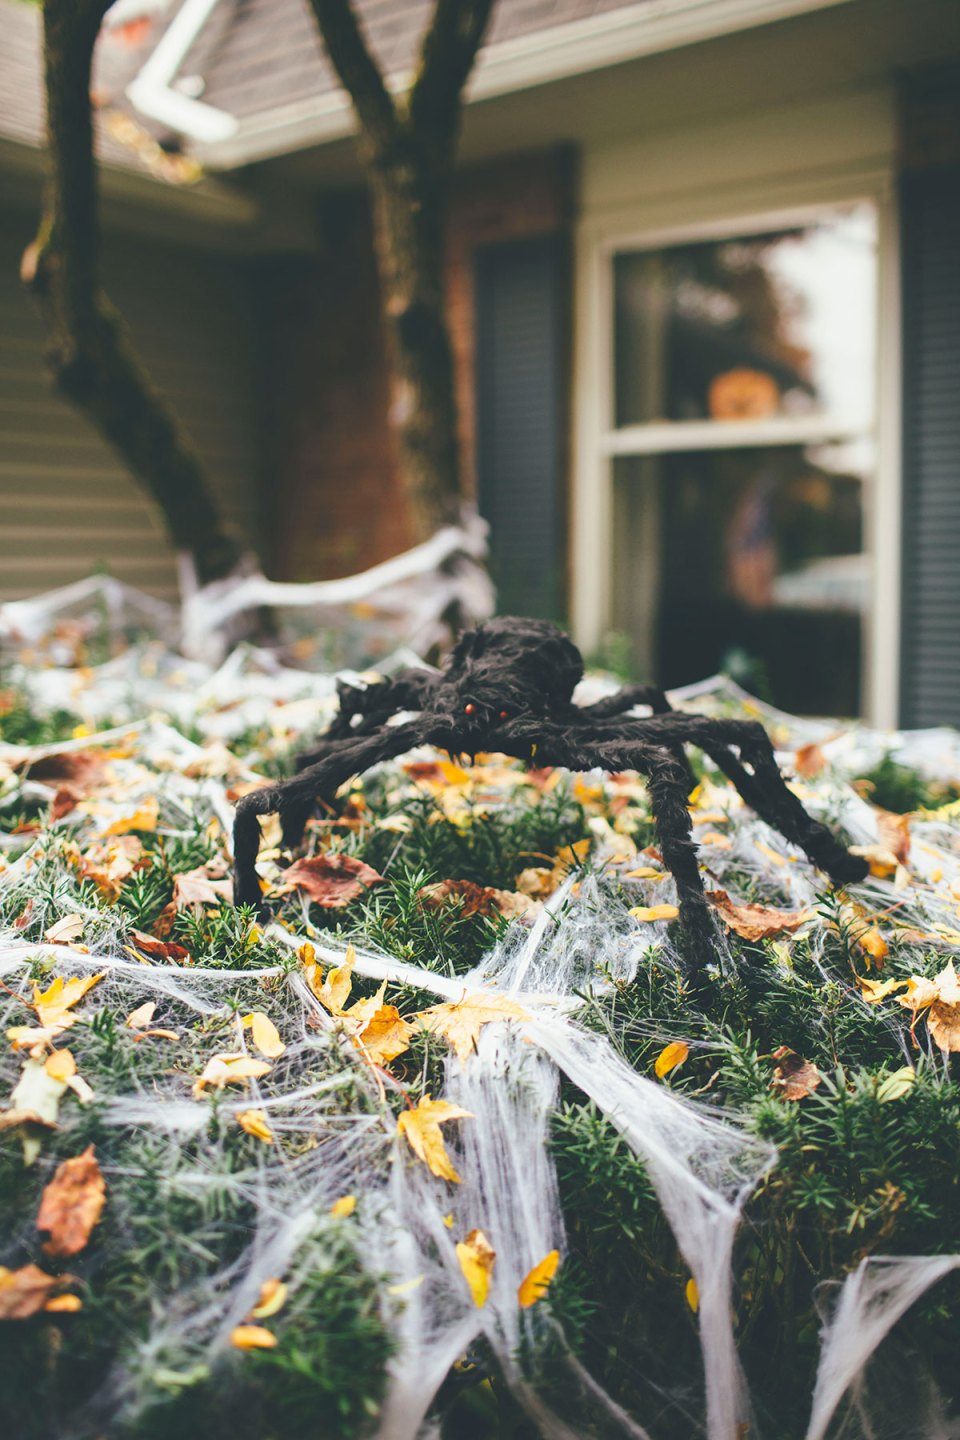 Large Furry Outdoor Spider on Cobweb Covered Bushes